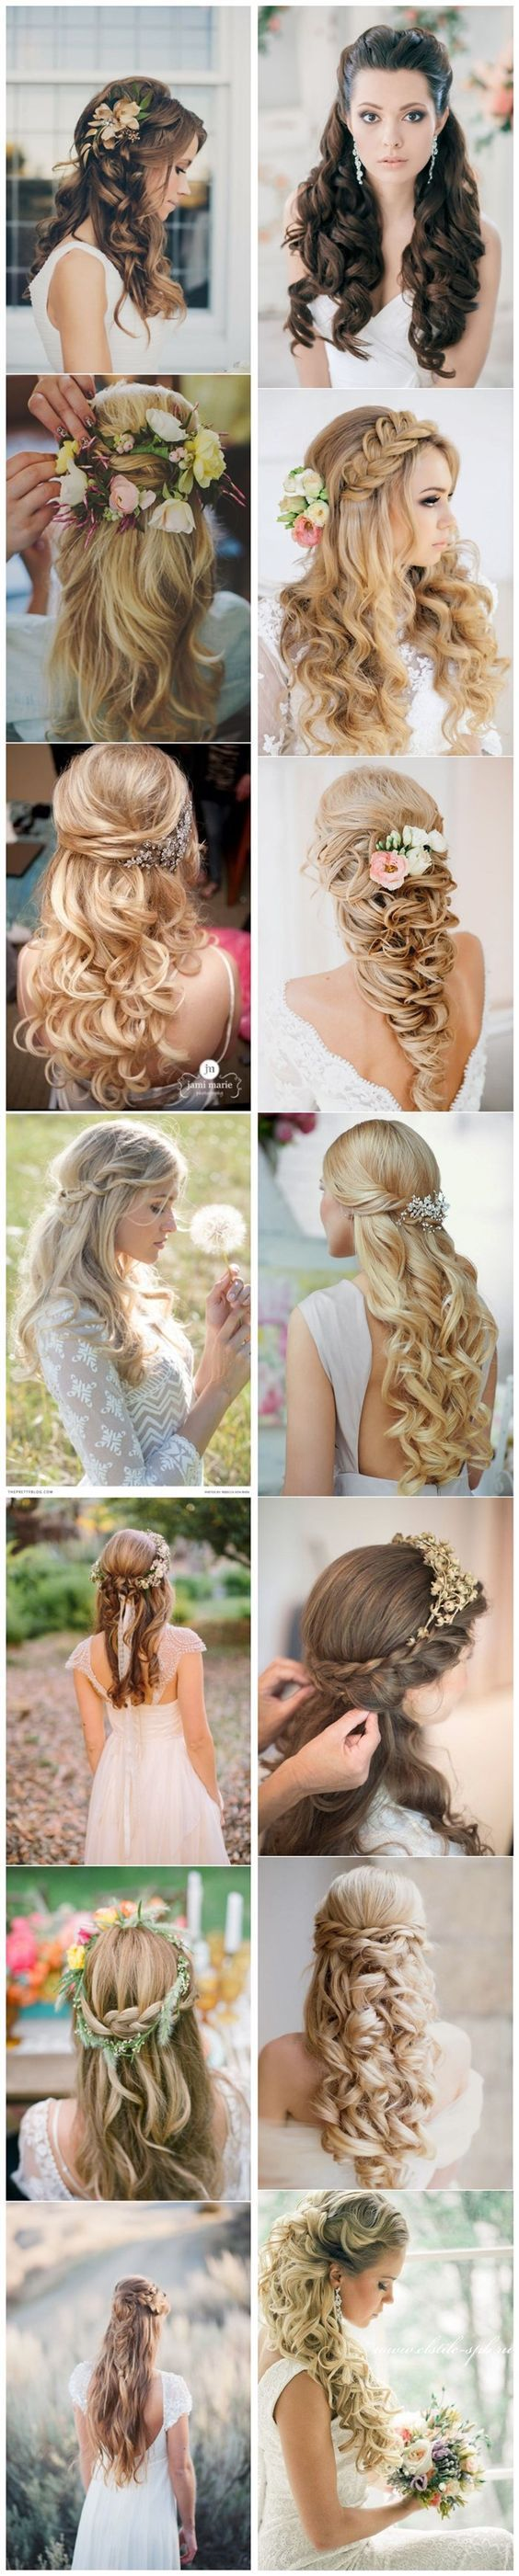 "HAVE THE WEDDING YOU WANT AND LOOK YOUR BEST WITH AN ULTIMATE BODY WRAP. MESSAGE ME OR Apart from those stunning wedding updos, there's still another popular bridal hairstyle in the world – the half up half down hairstyles. This is a versatile style with endless possibilities, half up half down hair goe… See more … Continue reading ""20 Stunning Half Up Half Down Wedding Hairstyles with Tutorial"""